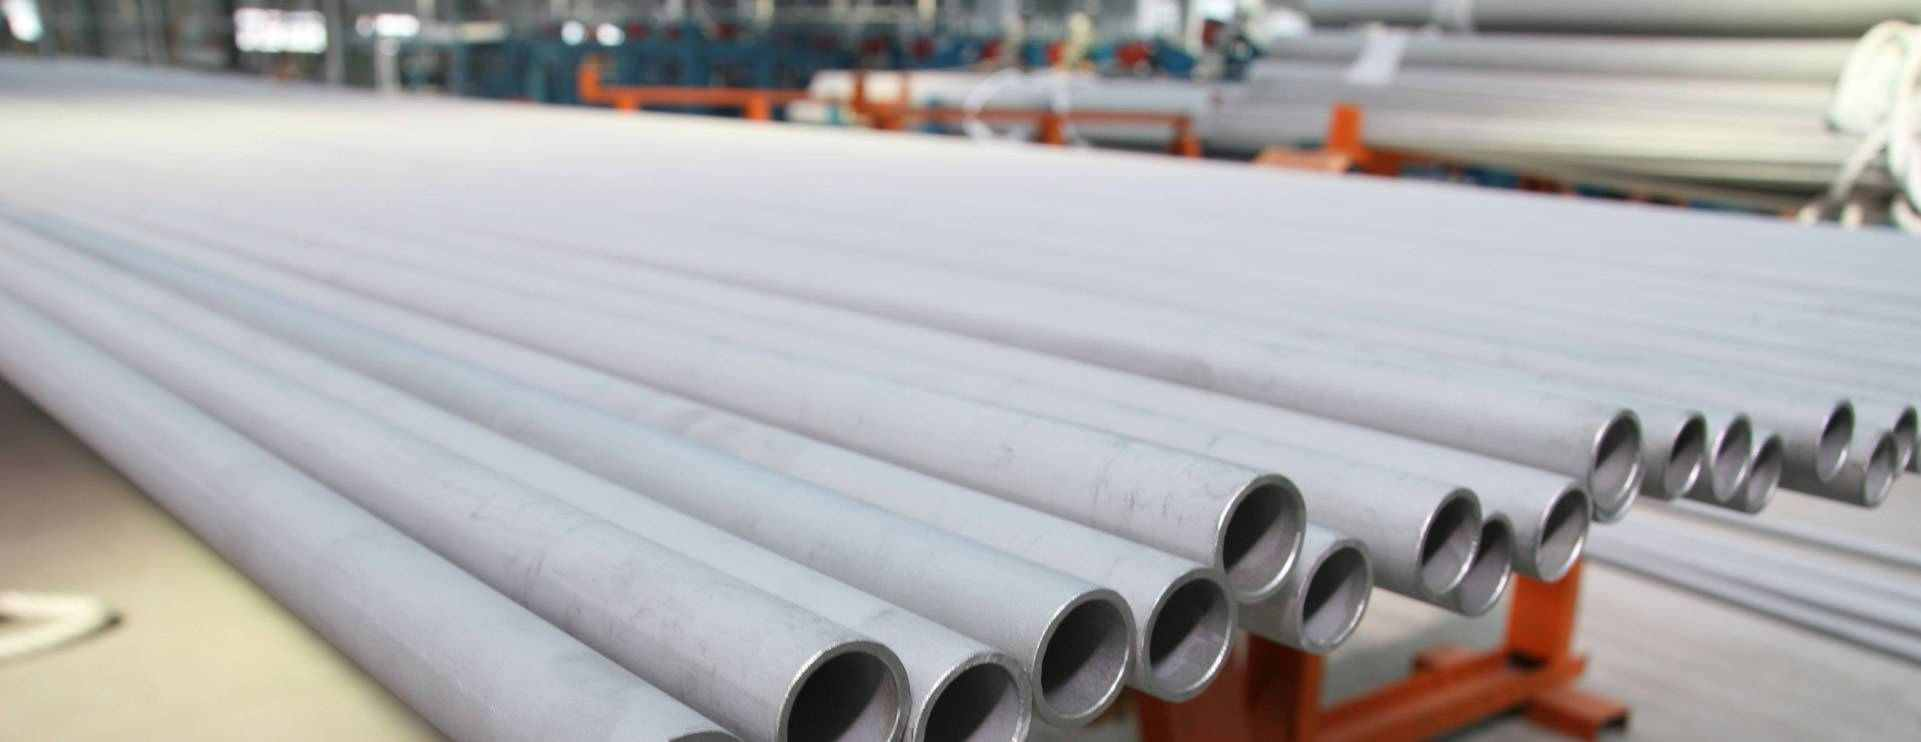 Buy stainless steel pipe from China factory.